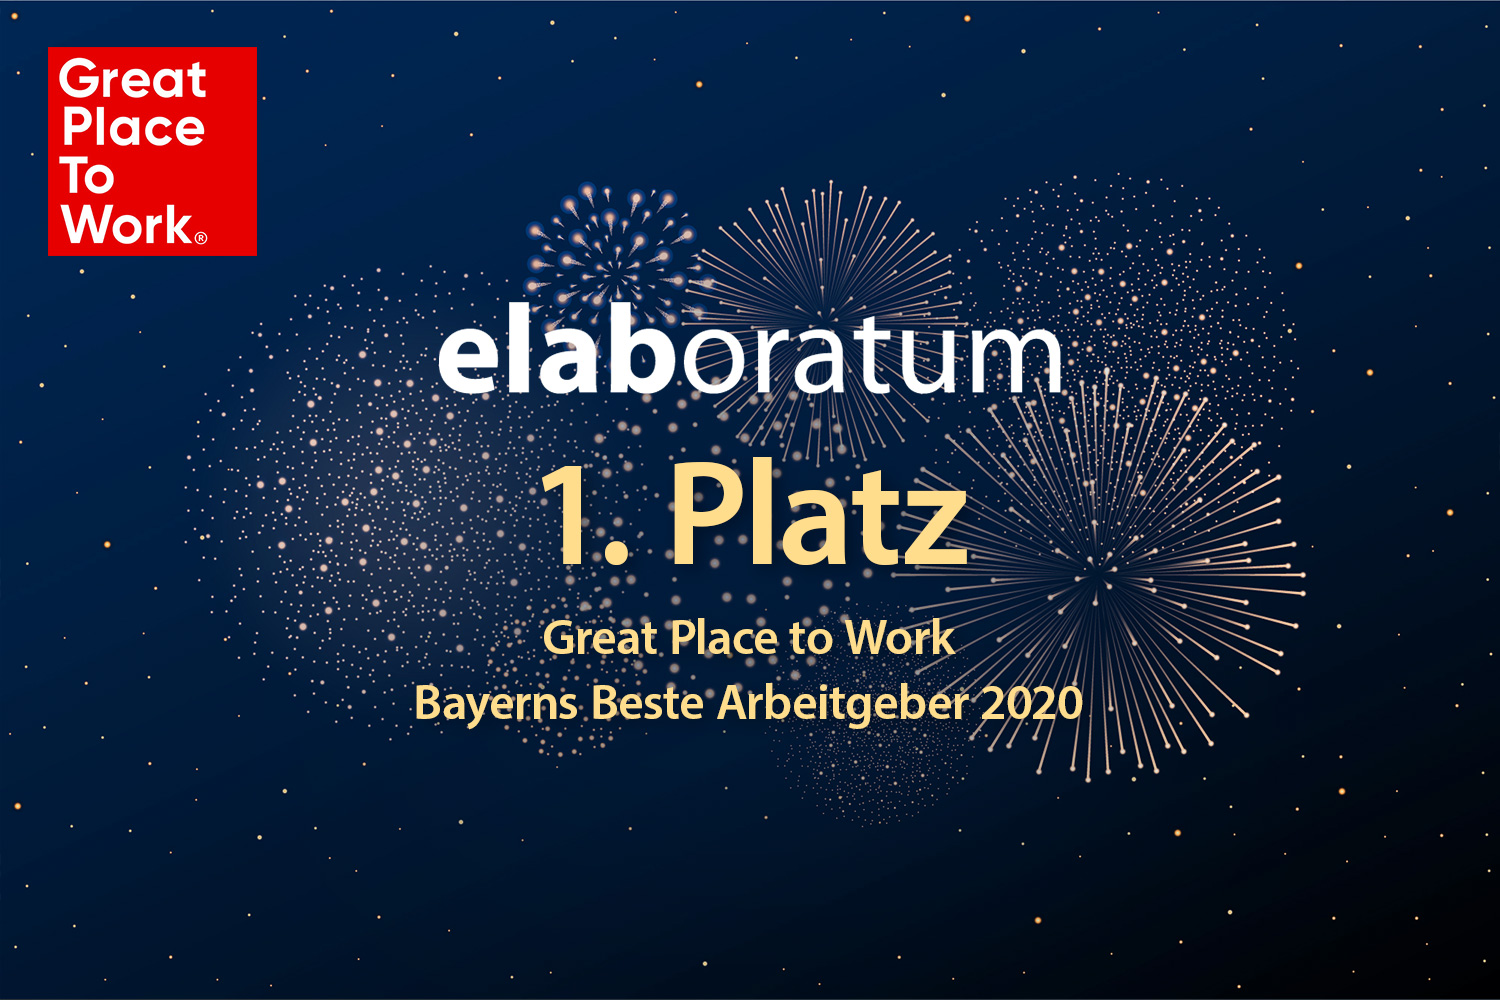 Great Place to Work Bayerns Beste Arbeitgeber 2020